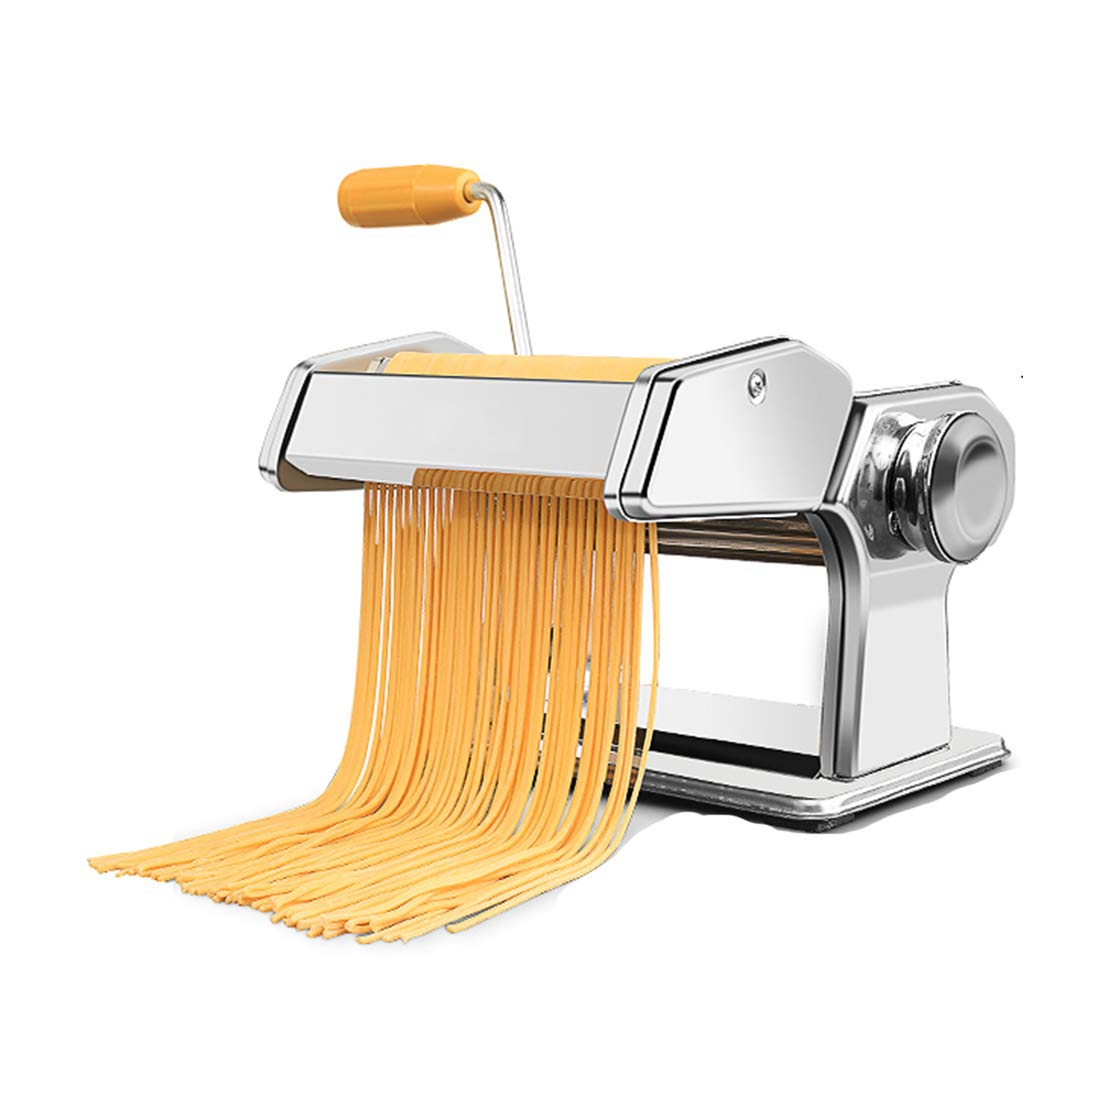 RRH Stainless Steel Pasta Roller Maker Machine Cutter, 2 Cutting Die and Flat roller with Table Top Clamp for Spaghetti Noodle Lasagna Tagliatelle by RRH